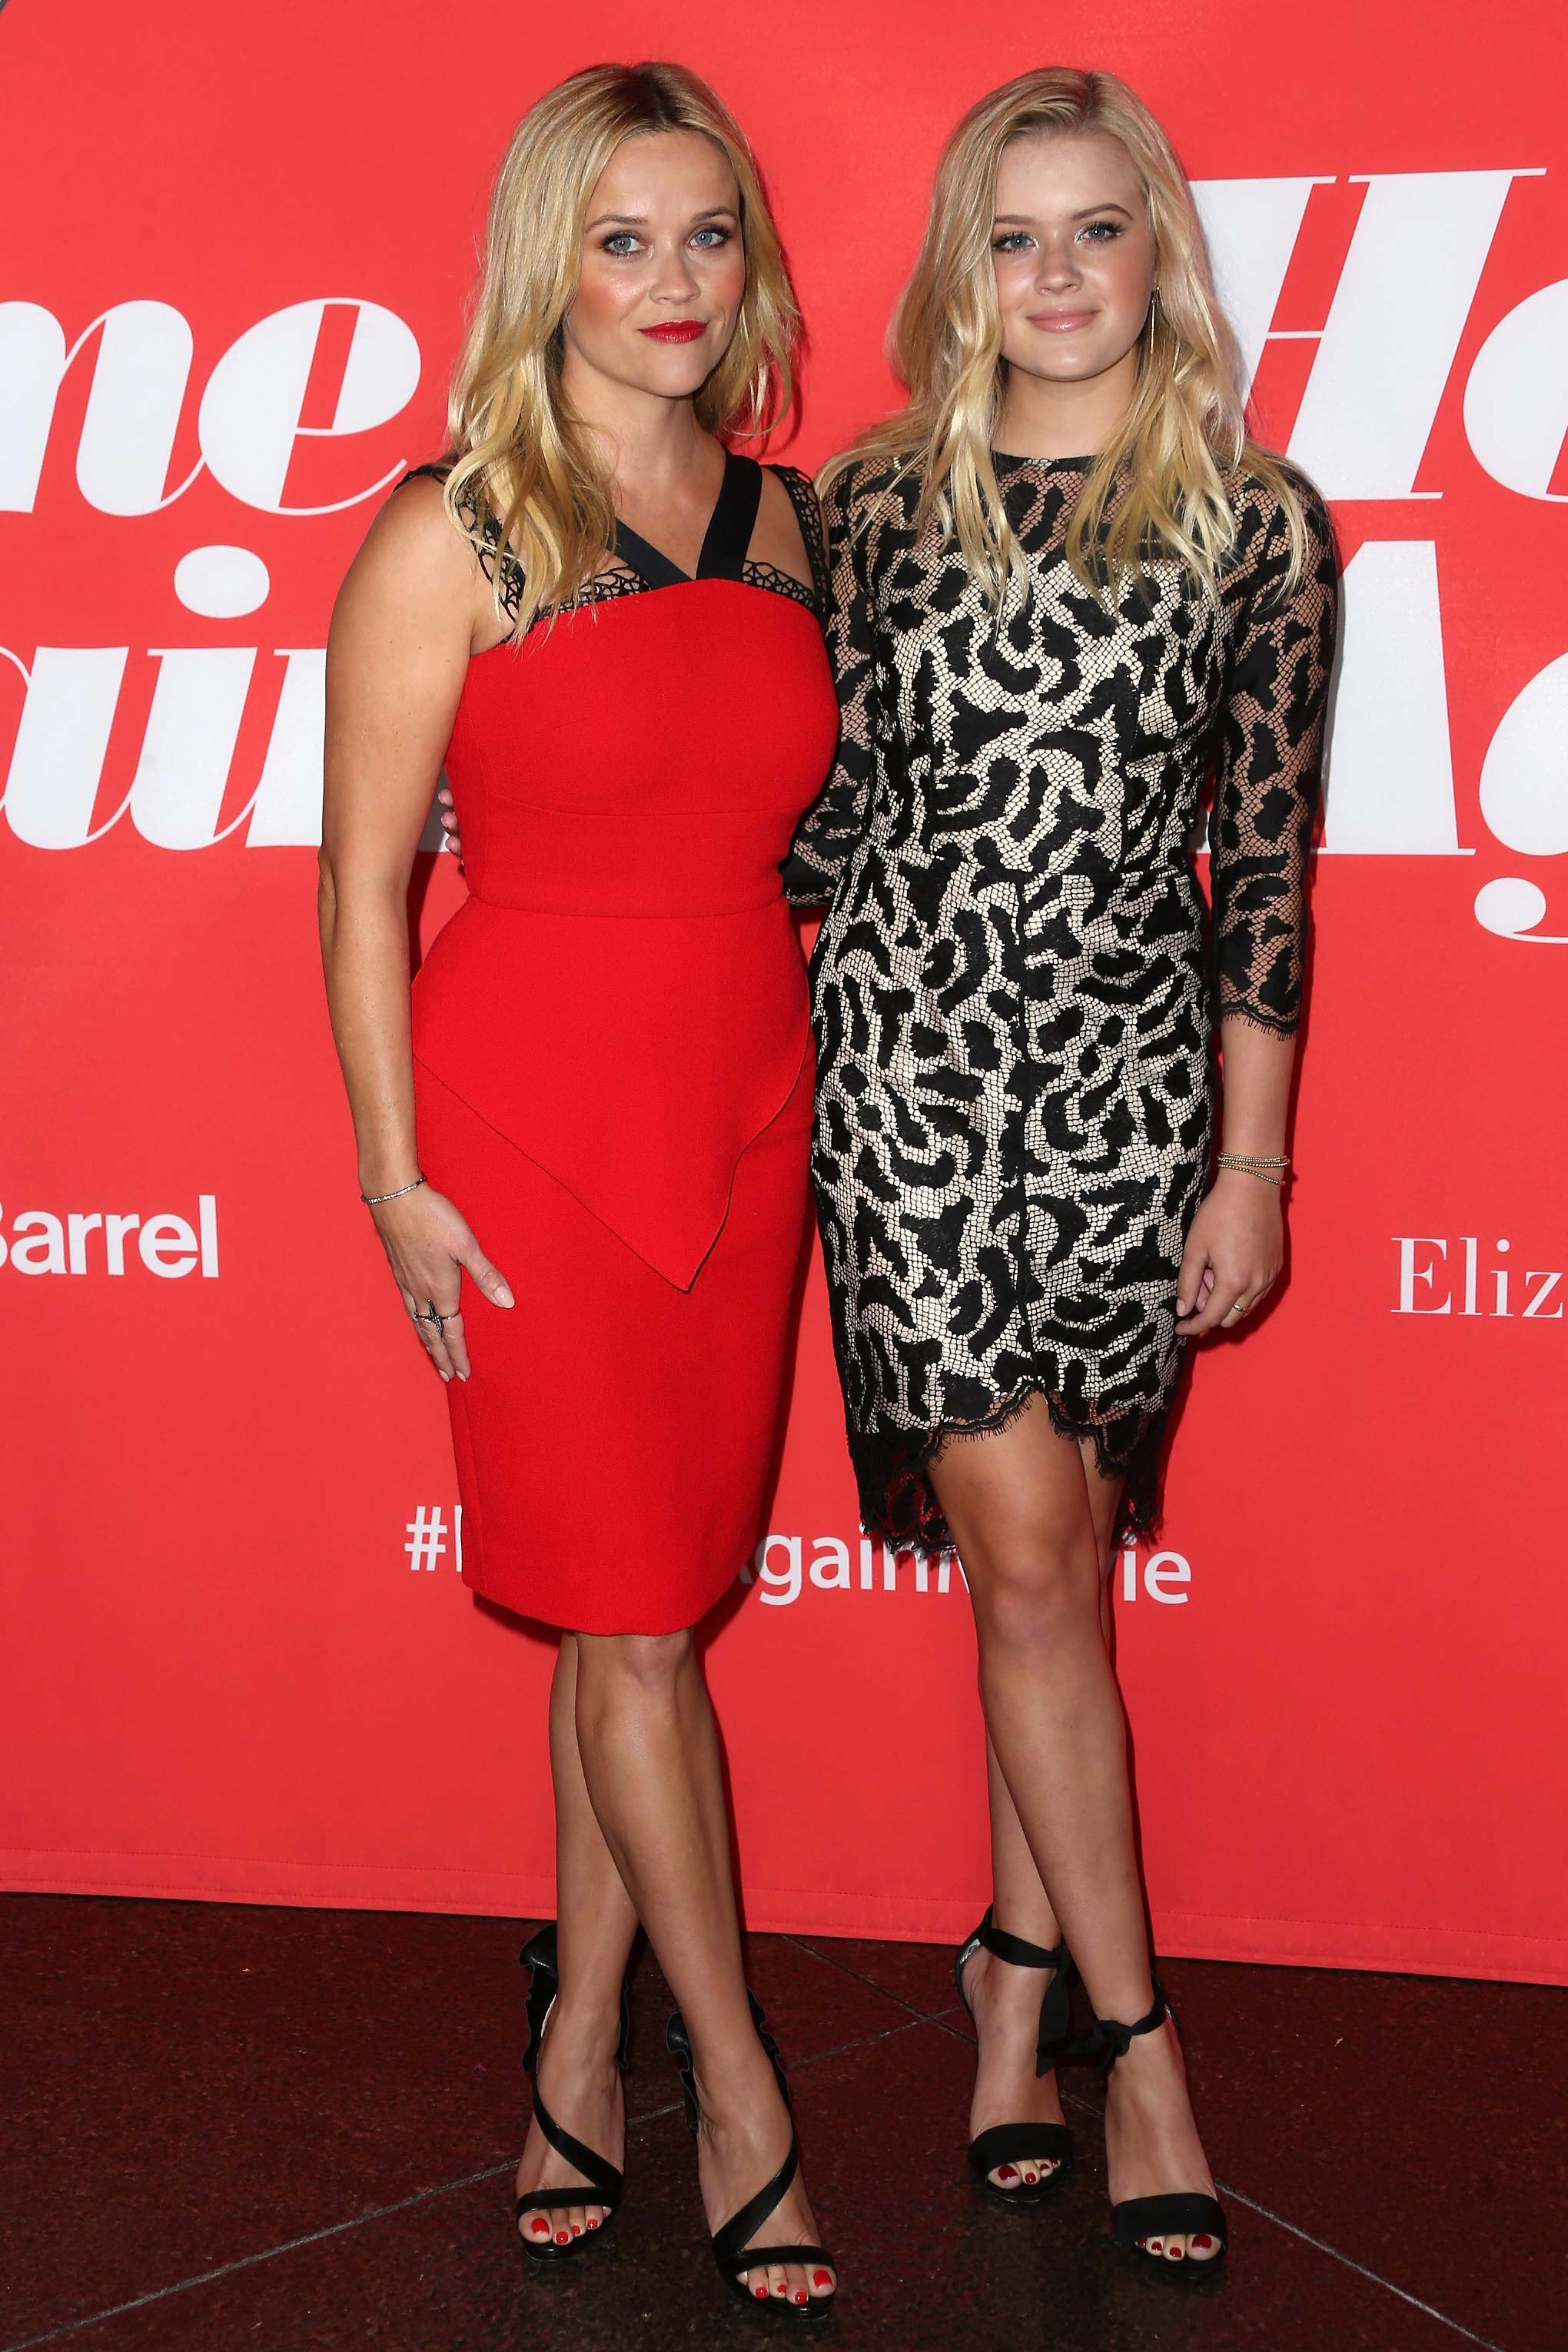 Communication on this topic: Reese Witherspoon Stuns In Red At The , reese-witherspoon-stuns-in-red-at-the/